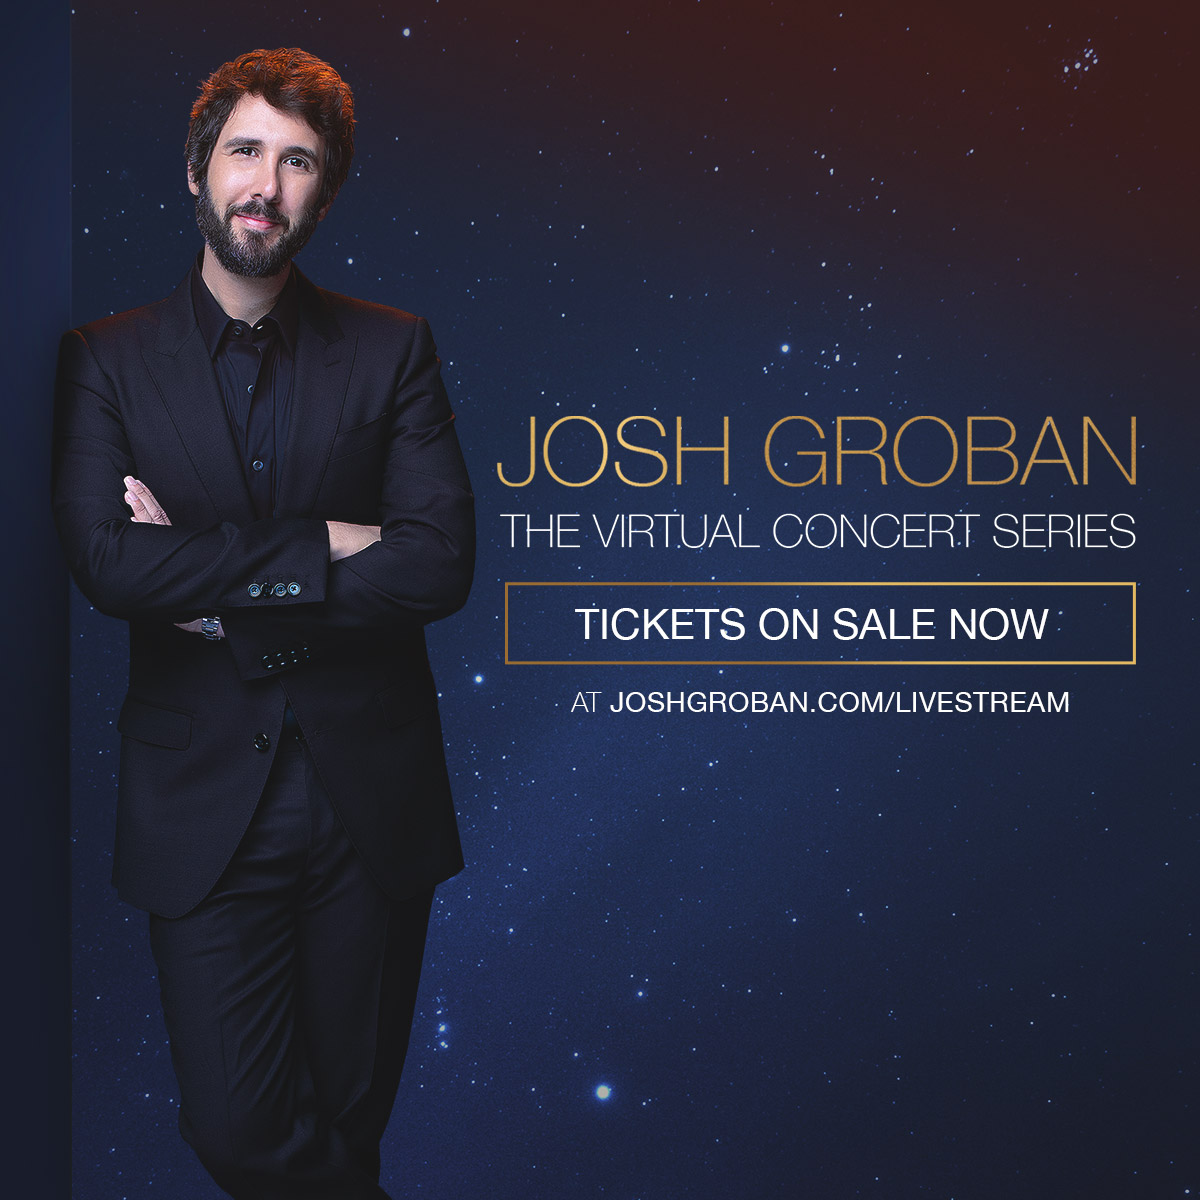 Josh Groban Virtual Concert Ticket for Feb 14, 2021